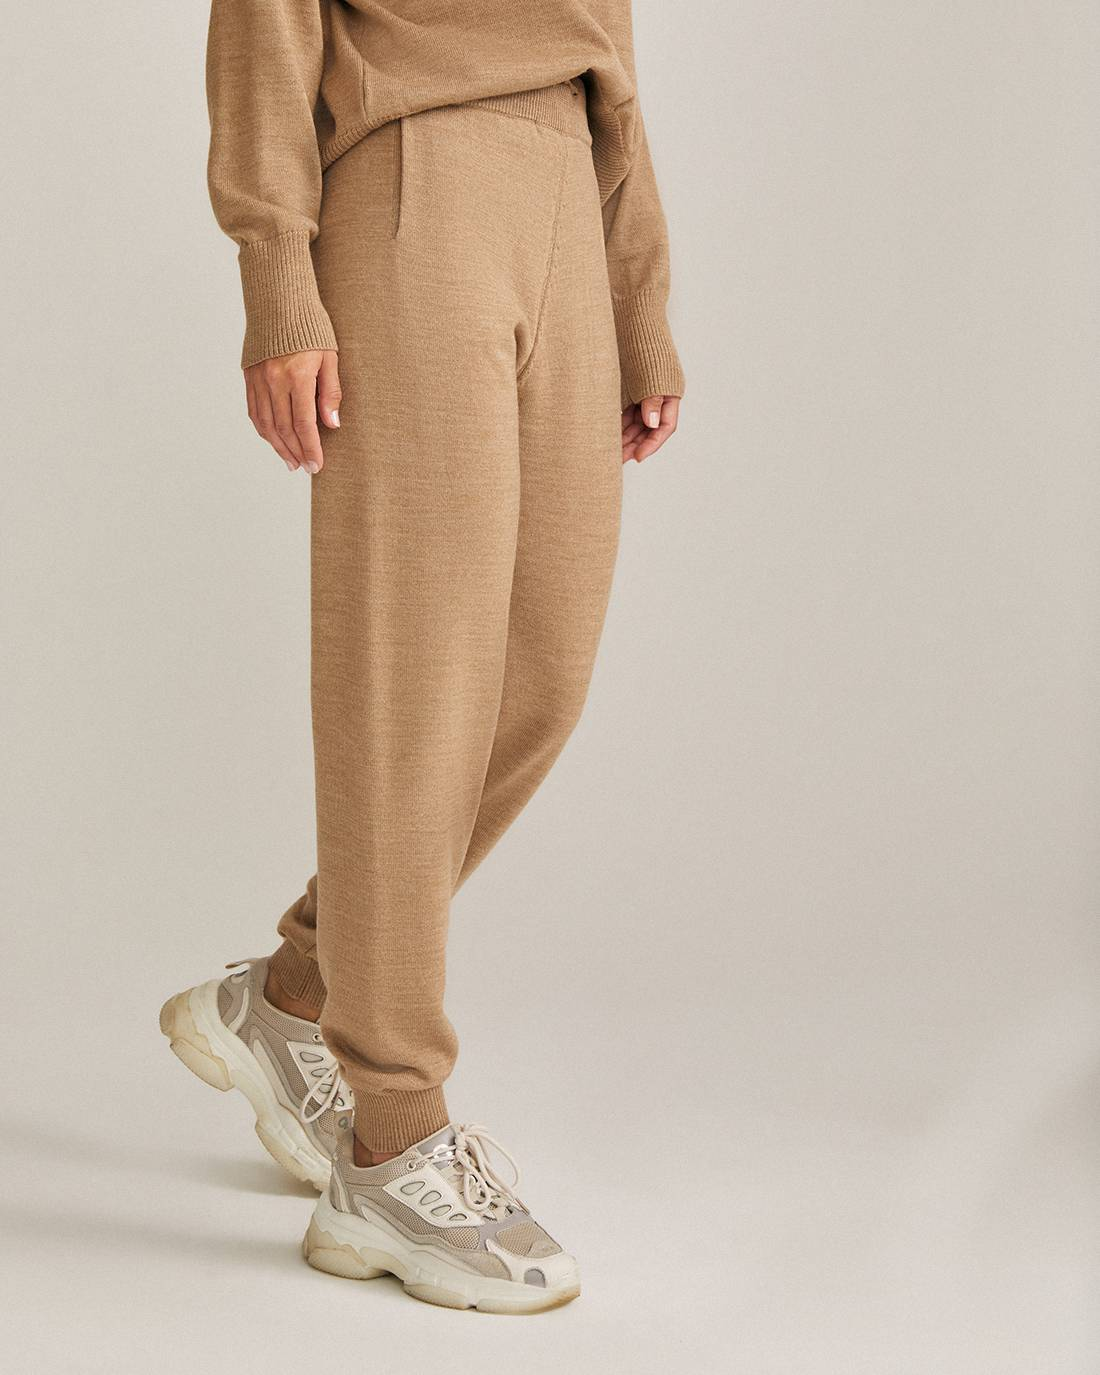 Merino wool jogging pants